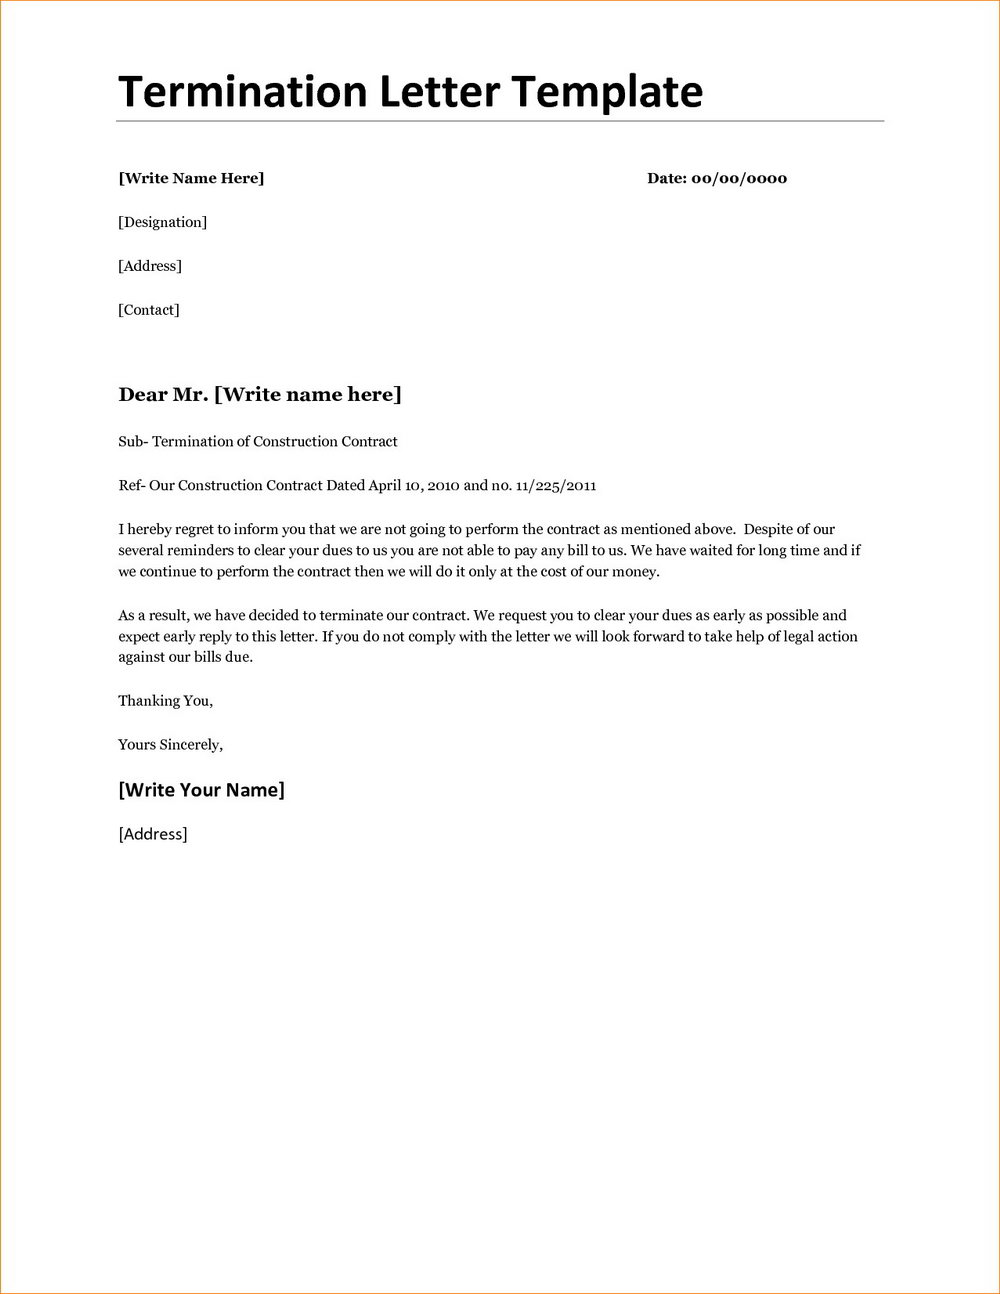 Real Estate Contract Termination Letter Template